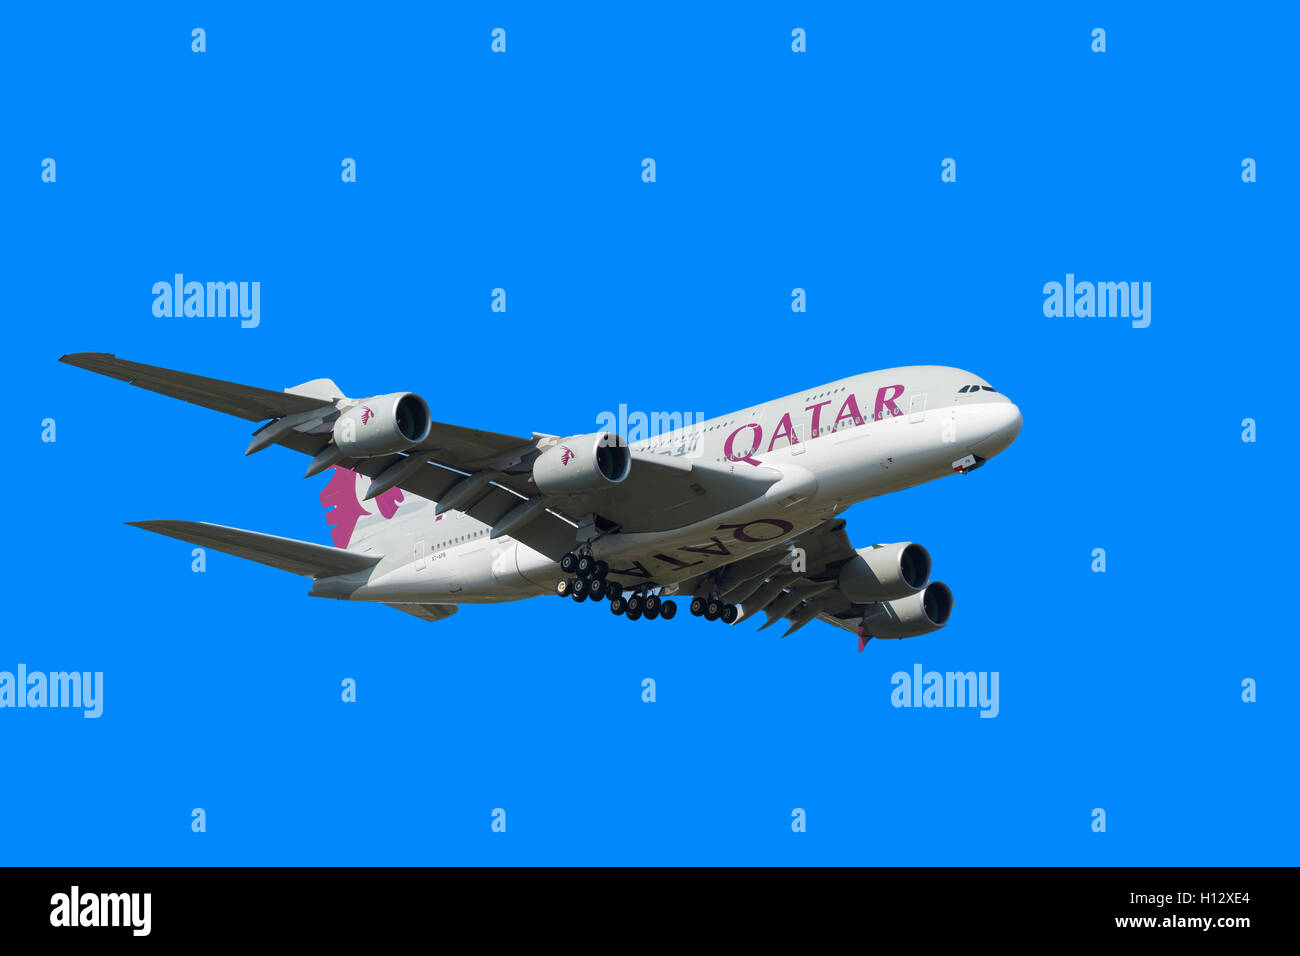 Qatar Airways Airbus A380 landing at Heathrow Airport, London Borough of Hillingdon, Greater London, England, United - Stock Image